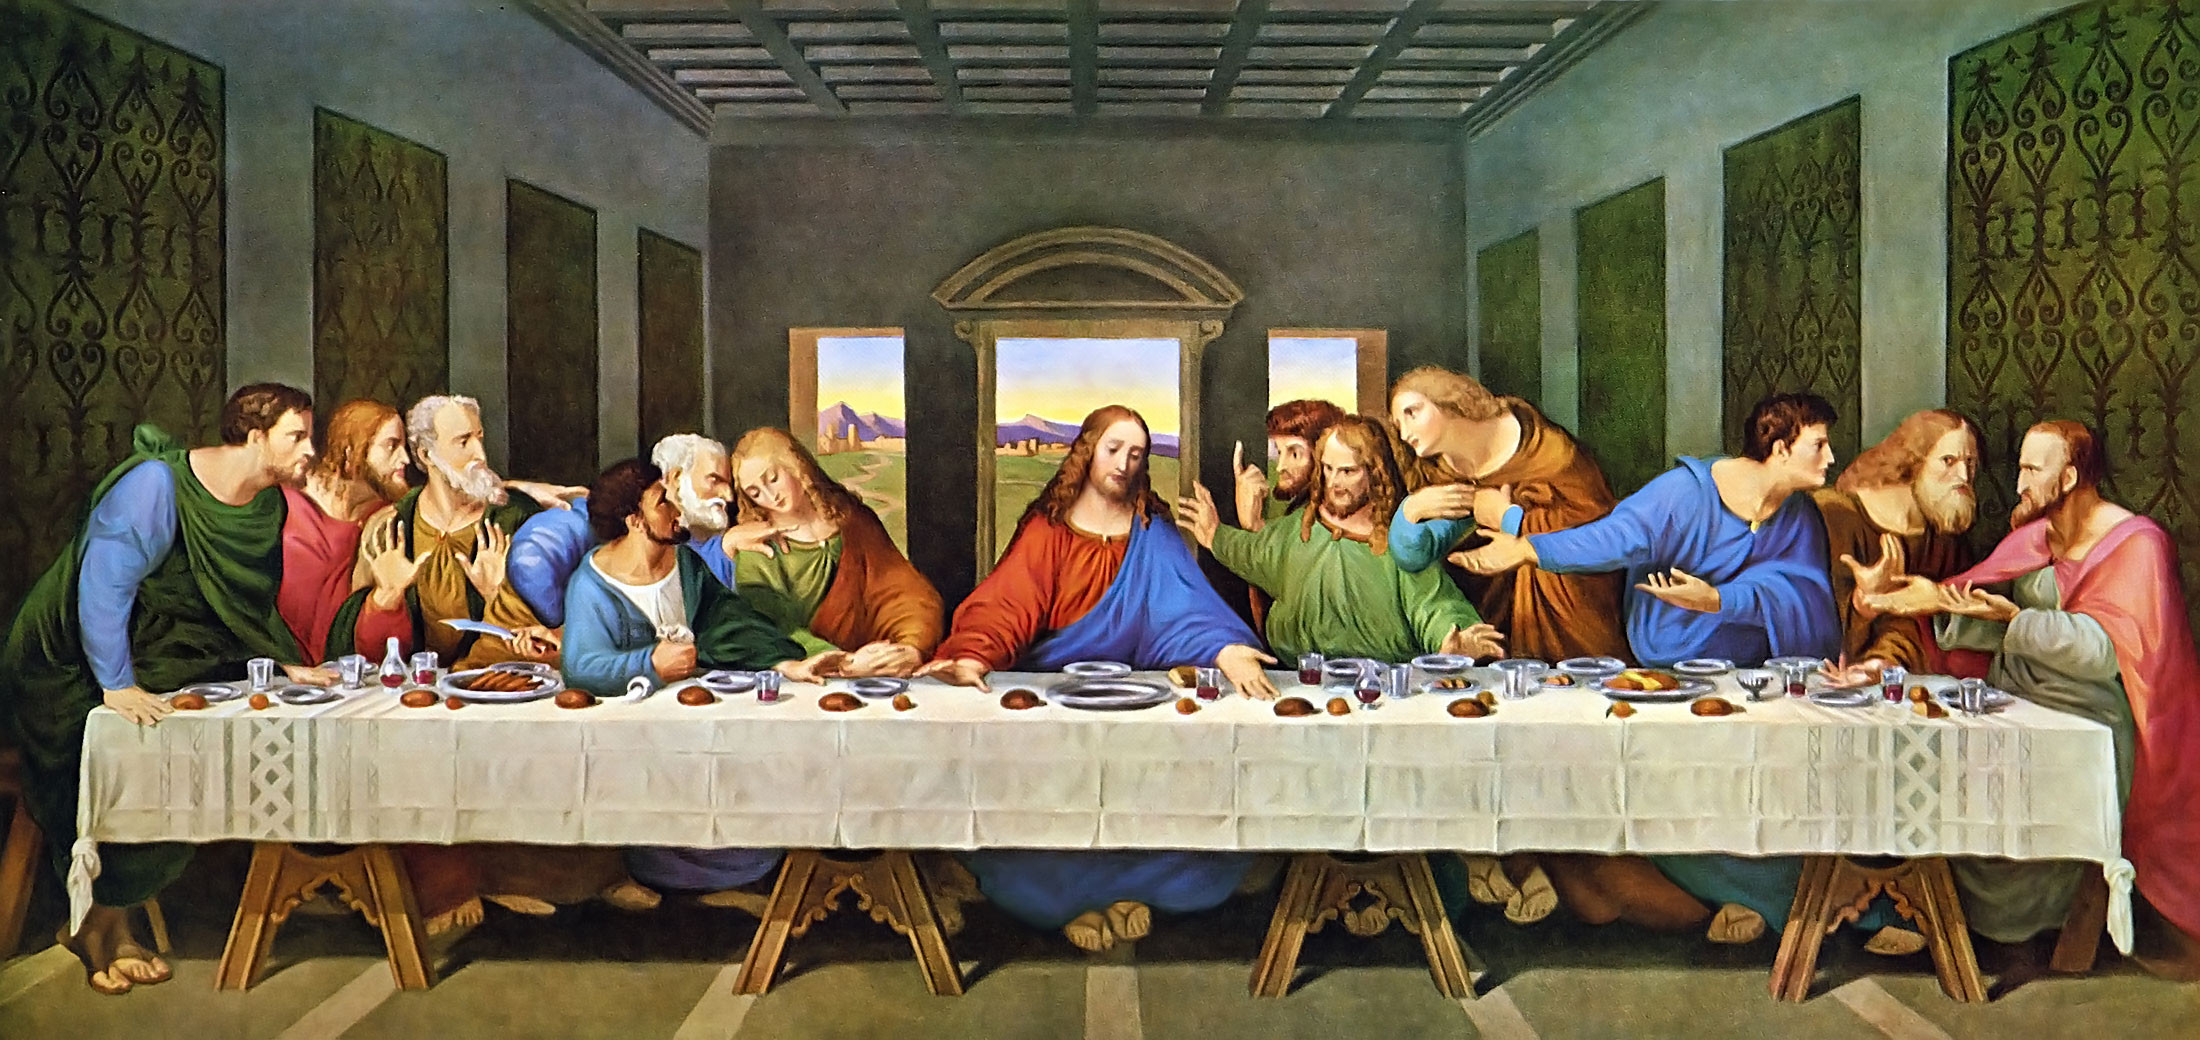 the last supper in todays culture One of the most iconic images in the world today is of the 'last supper' this event is recorded in the christian bible and is said to be jesus christ's last supper with his disciples, before his execution.